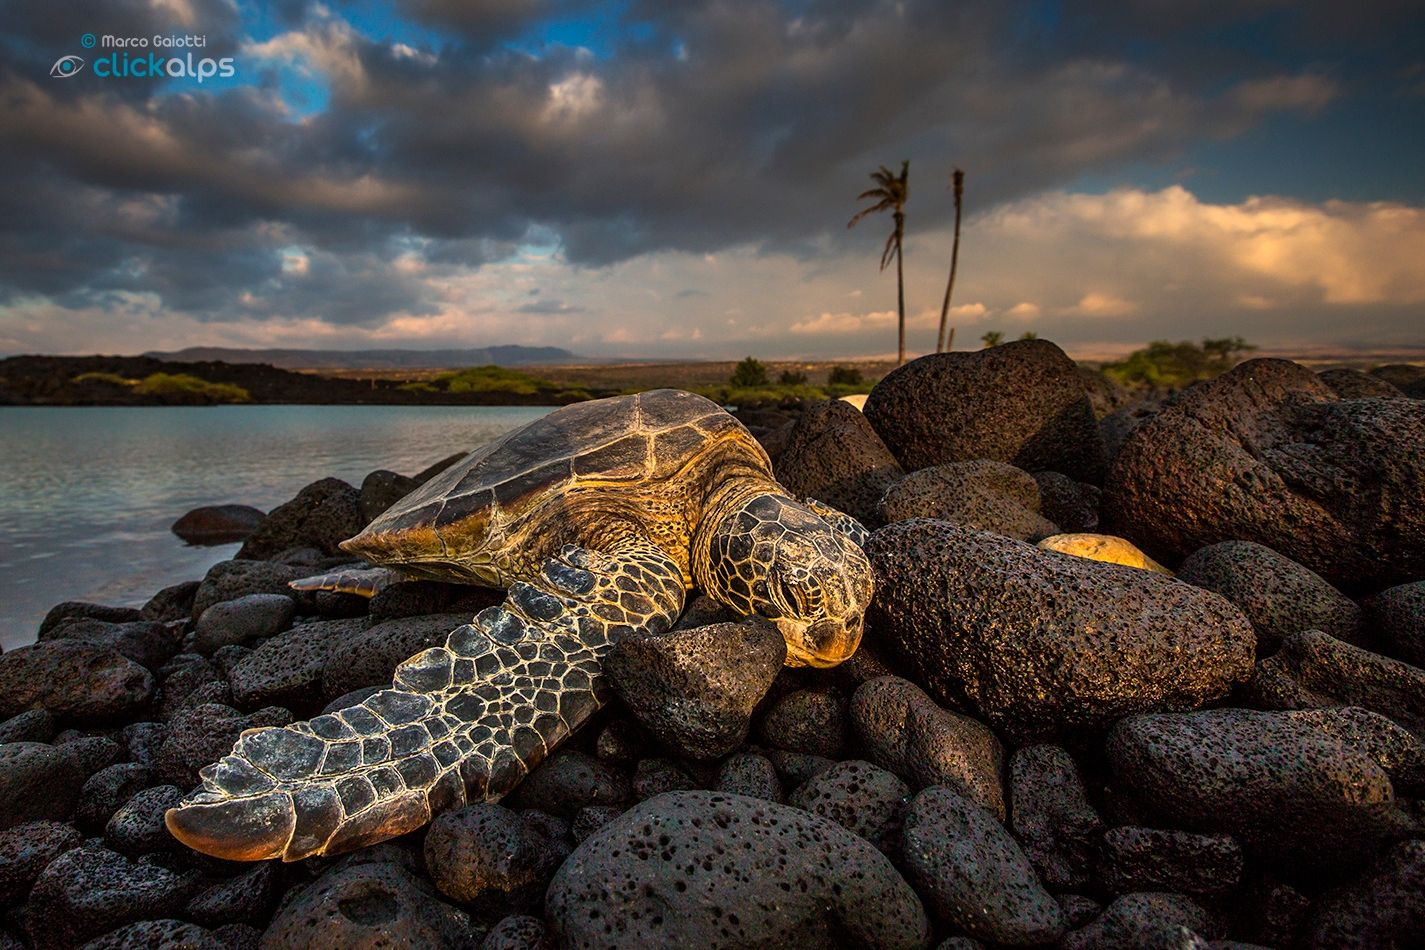 Sea turtle of Hawaii - A green sea turtle at sunset in Kiolo Bay, Hawaii